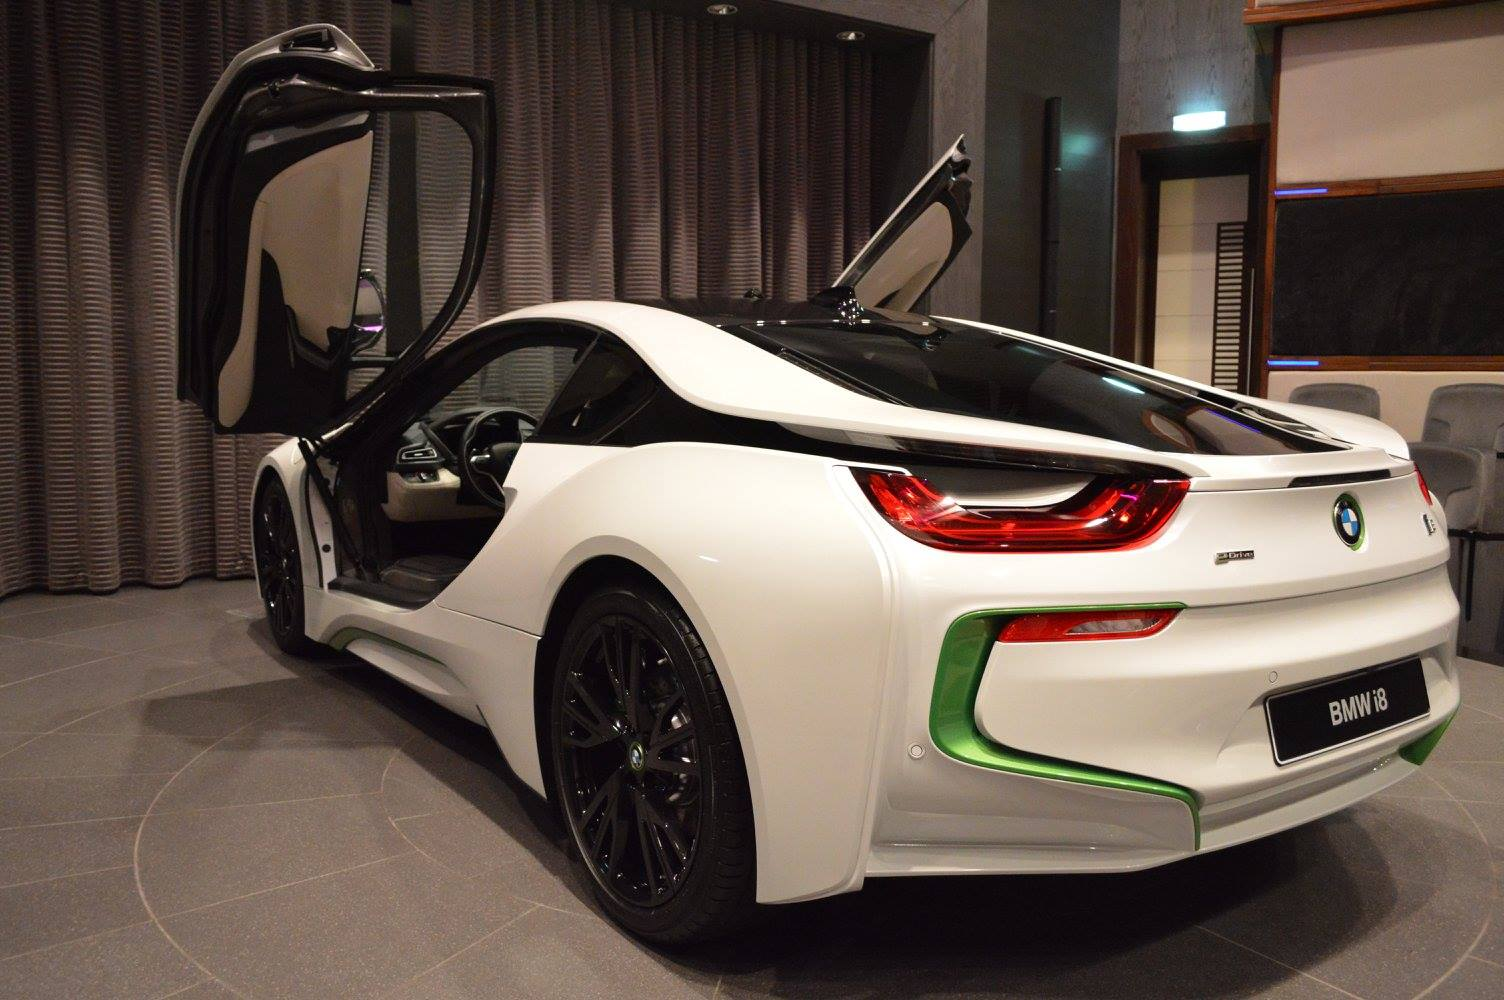 Fabulous White Bmw I8 With Java Green Accents Gtspirit